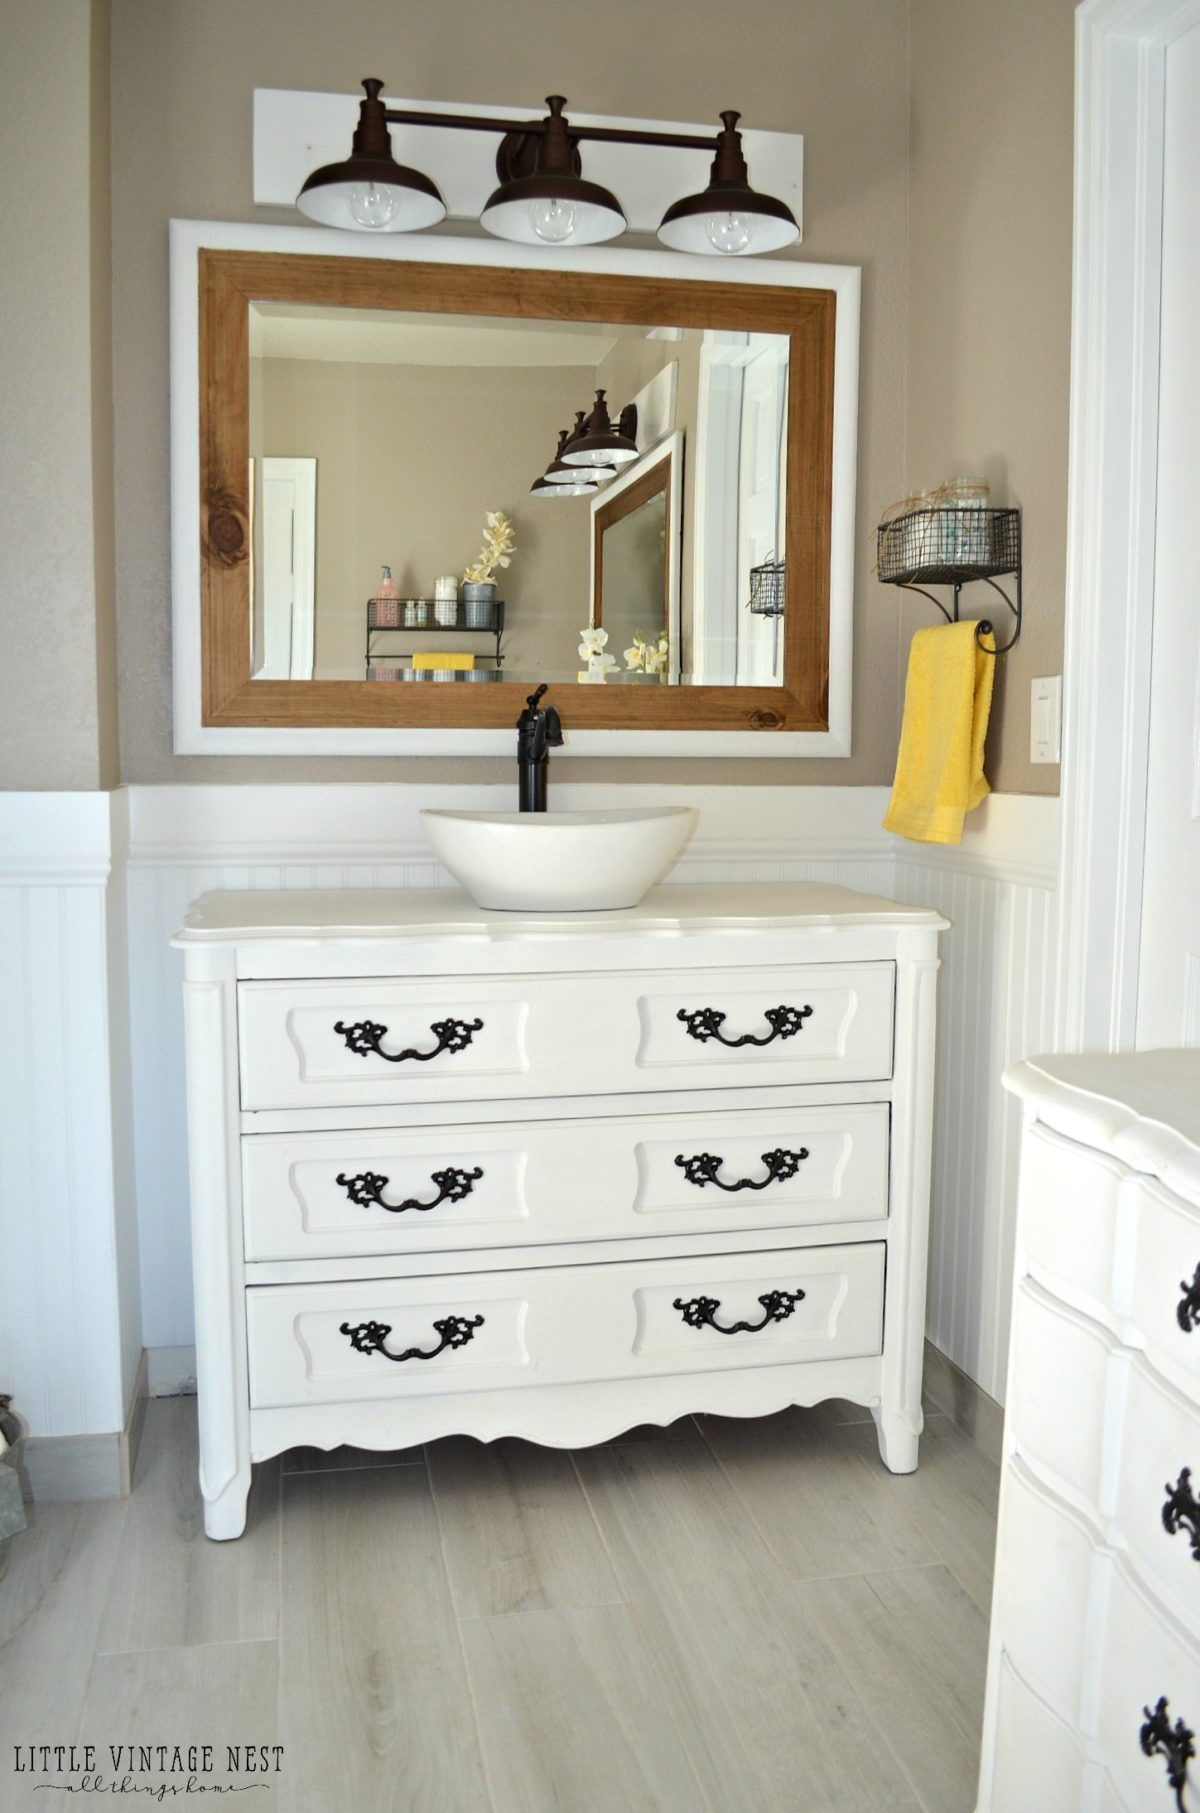 Awesome  Name Diy_dresser_bathroom_vanity13jpg DIY Dresser Bathroom Vanity